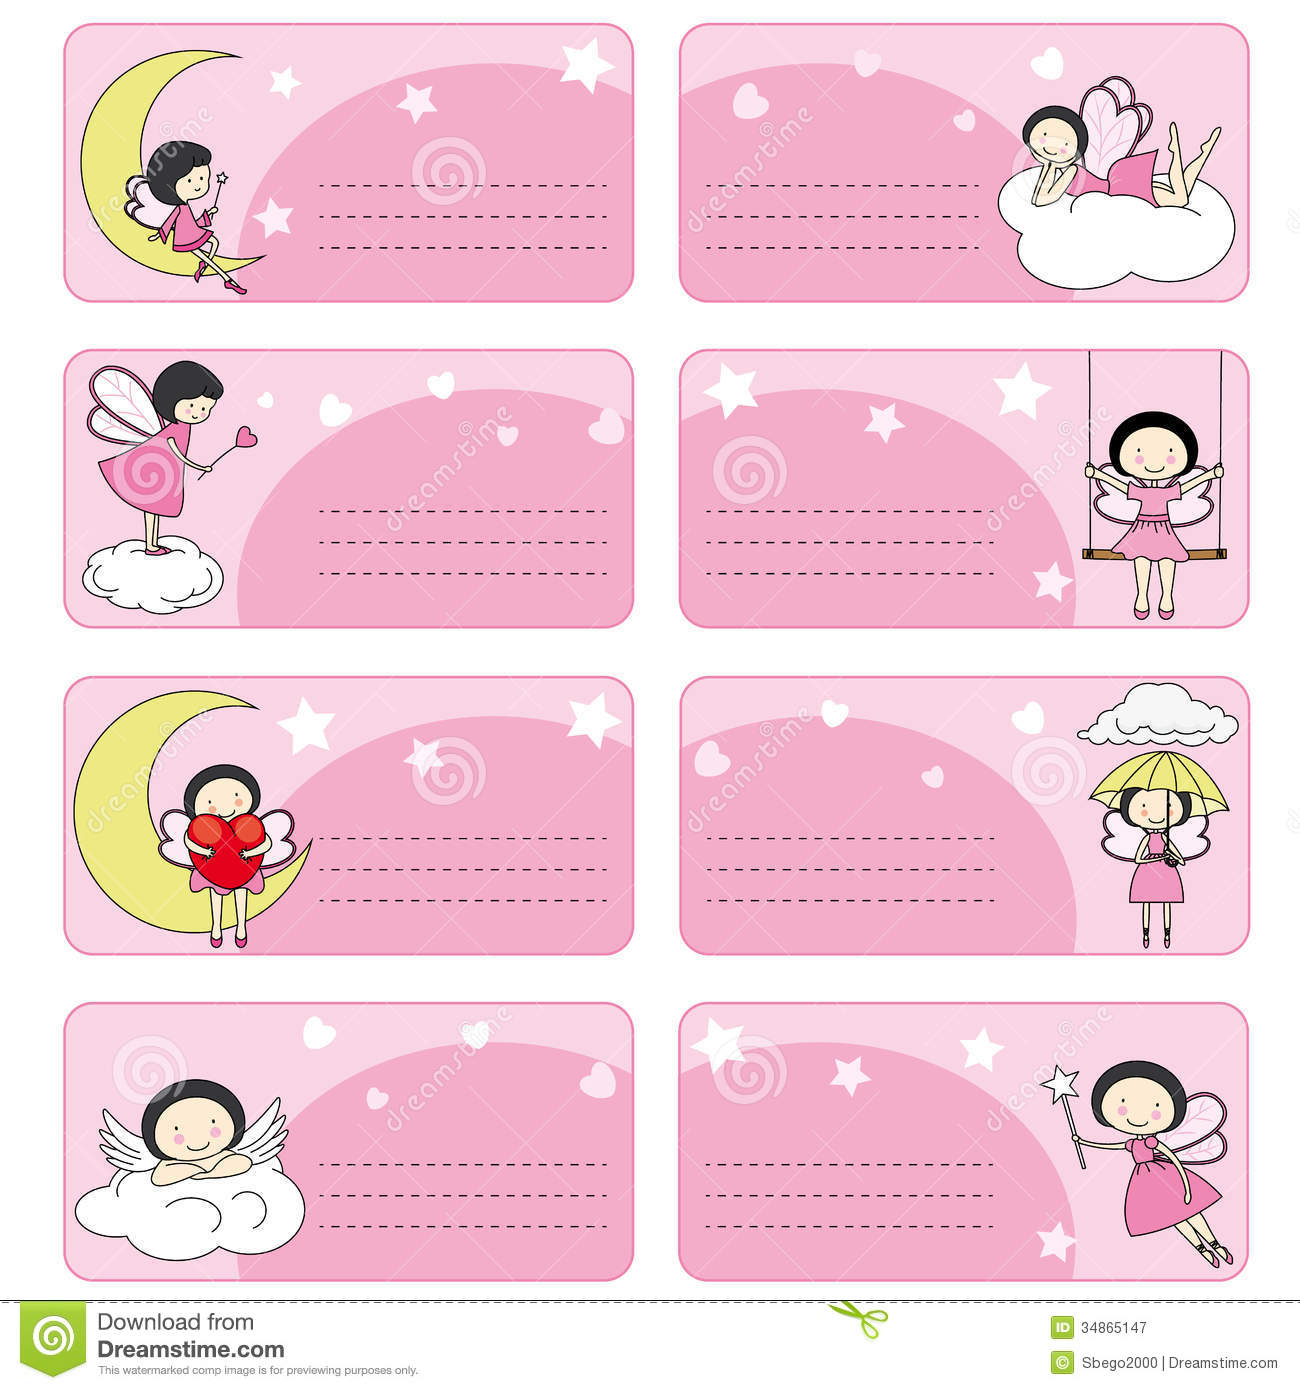 Fairy labels stock vector. Image of fairy, signs, cloud ...